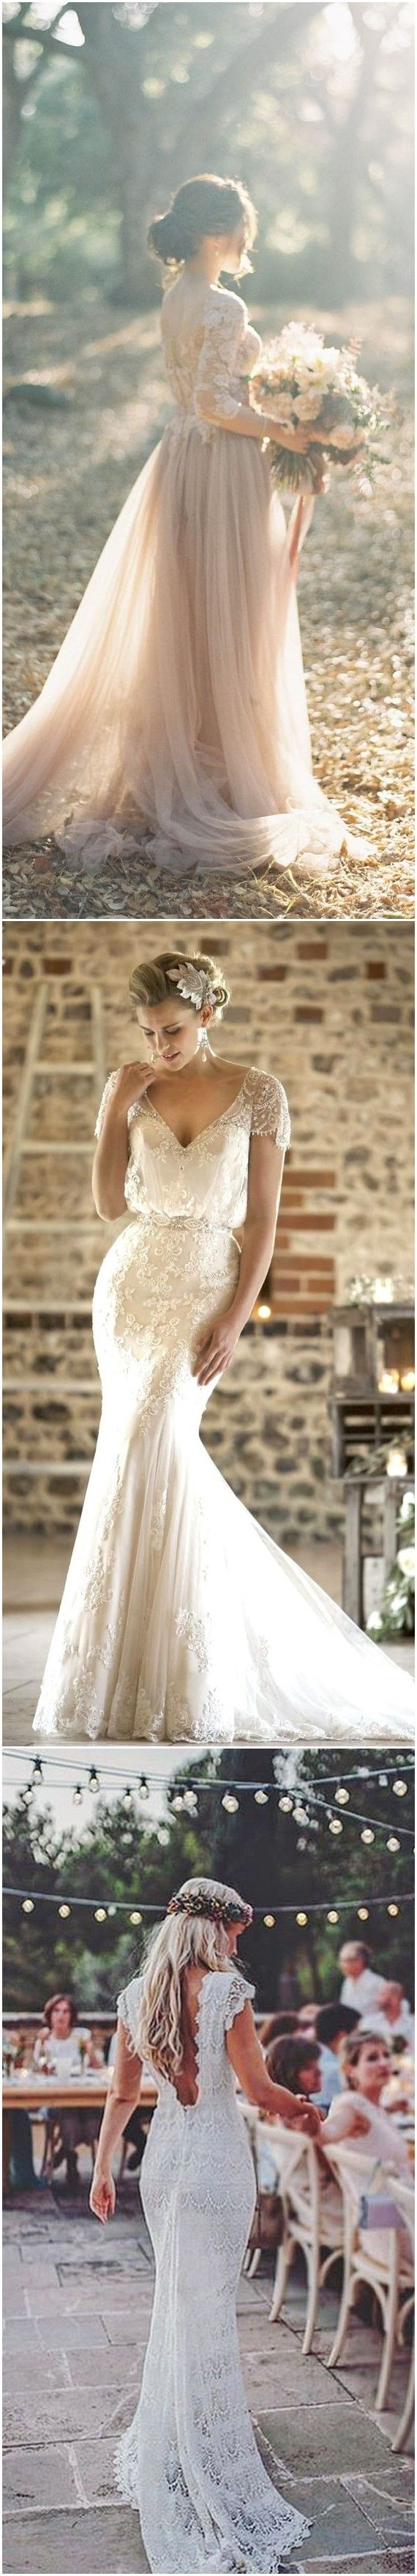 Best 25 vintage wedding dresses ideas on pinterest lace for Romantic vintage lace wedding dresses